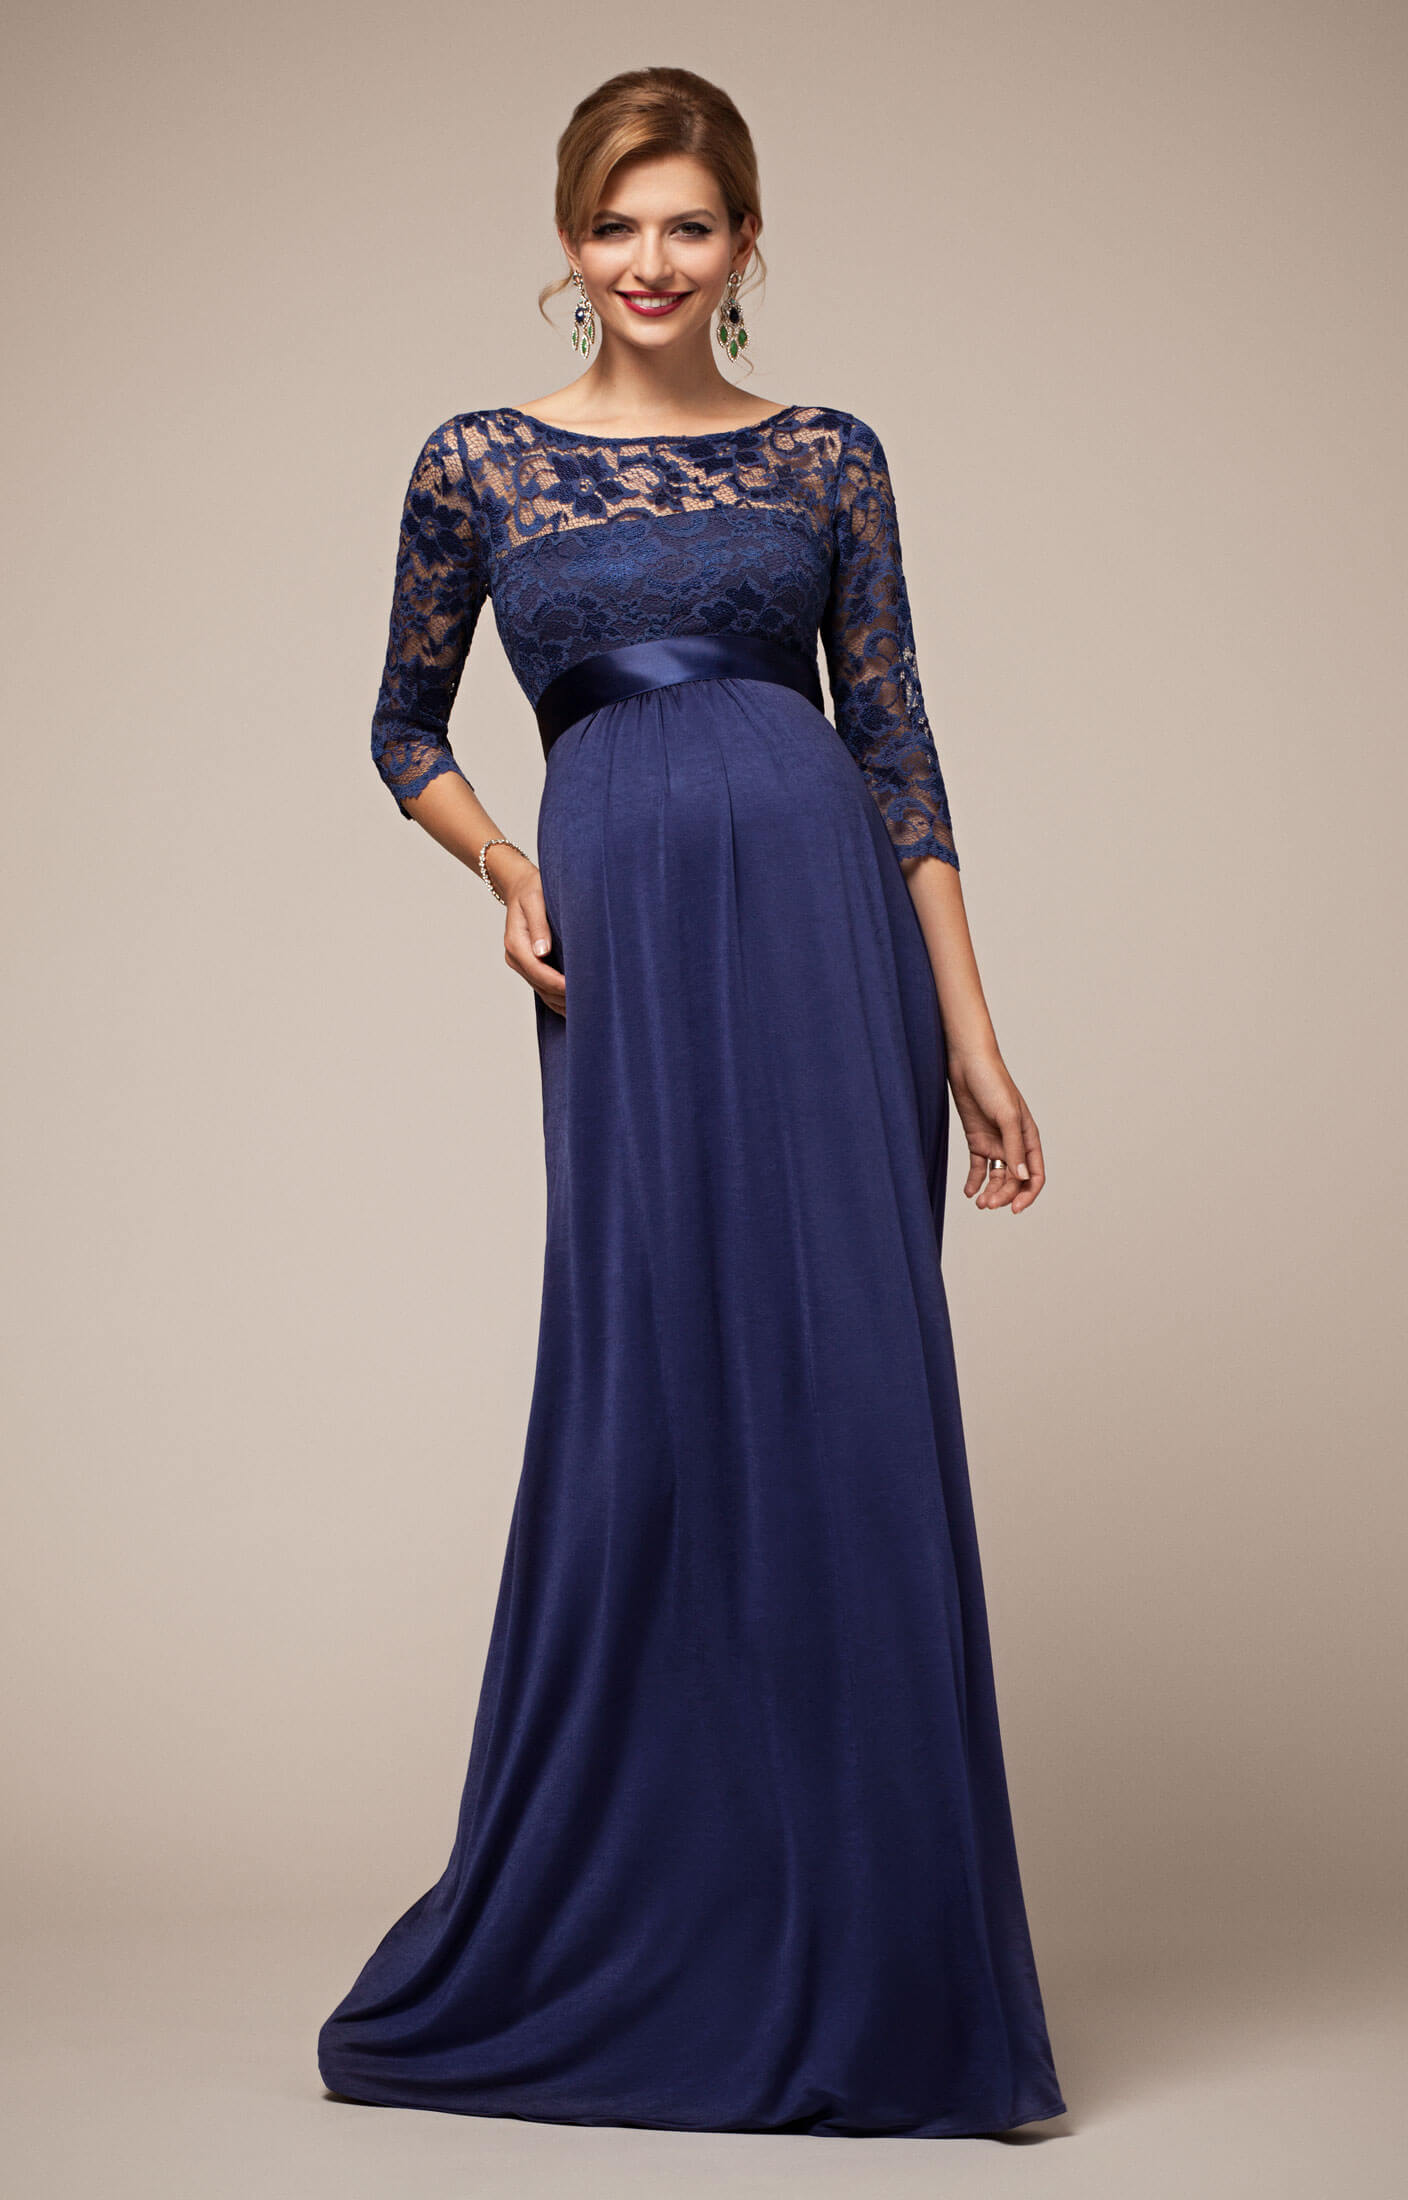 Lucia maternity gown windsor blue maternity wedding dresses lucia maternity gown windsor blue maternity wedding dresses evening wear and party clothes by tiffany rose ombrellifo Gallery